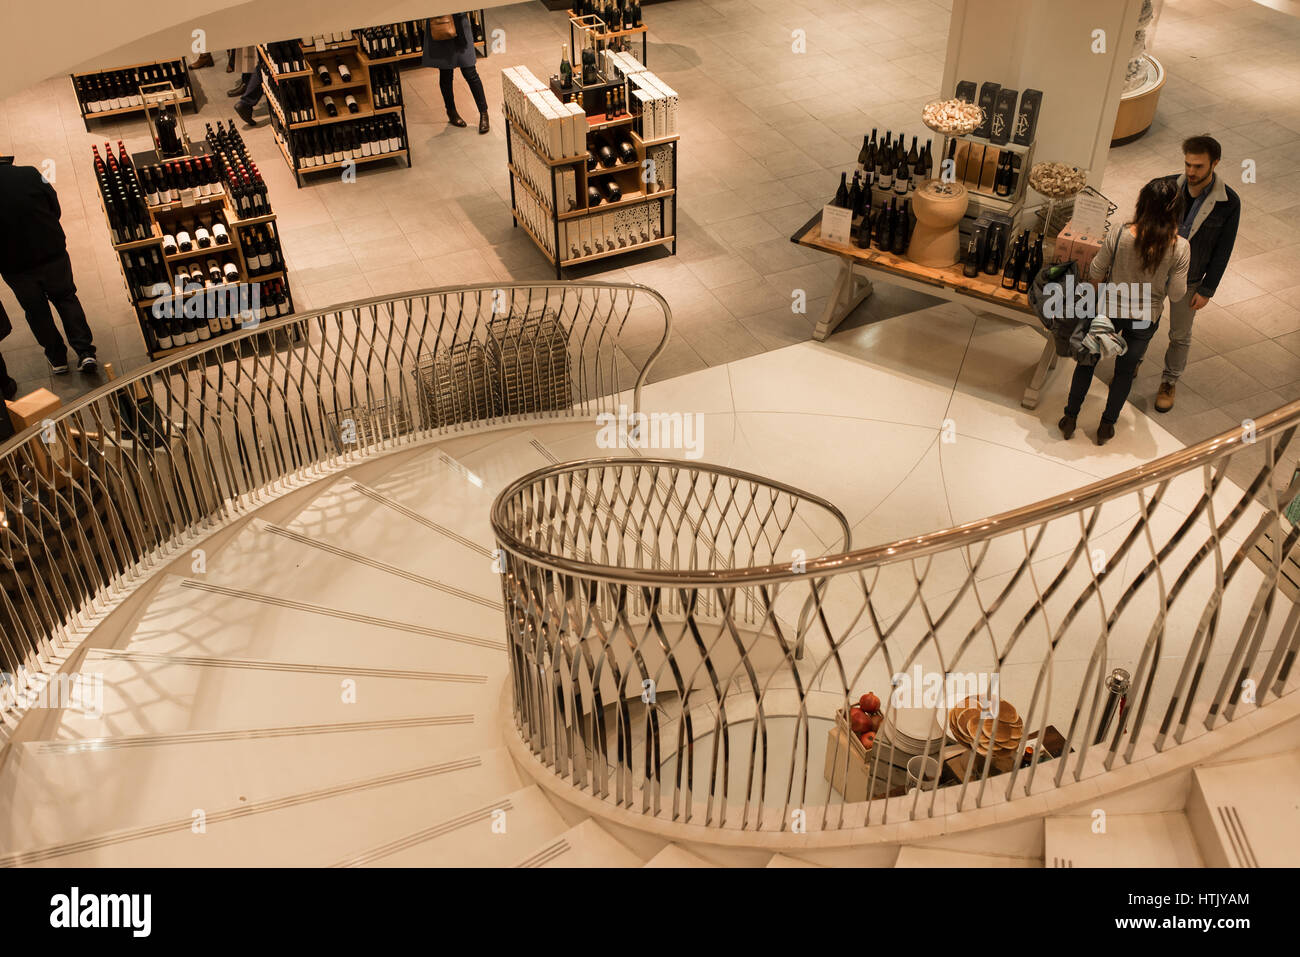 Interiors of Fortnum & Mason with customers browising the wine collection. Fortnum & Mason is an upmarket - Stock Image